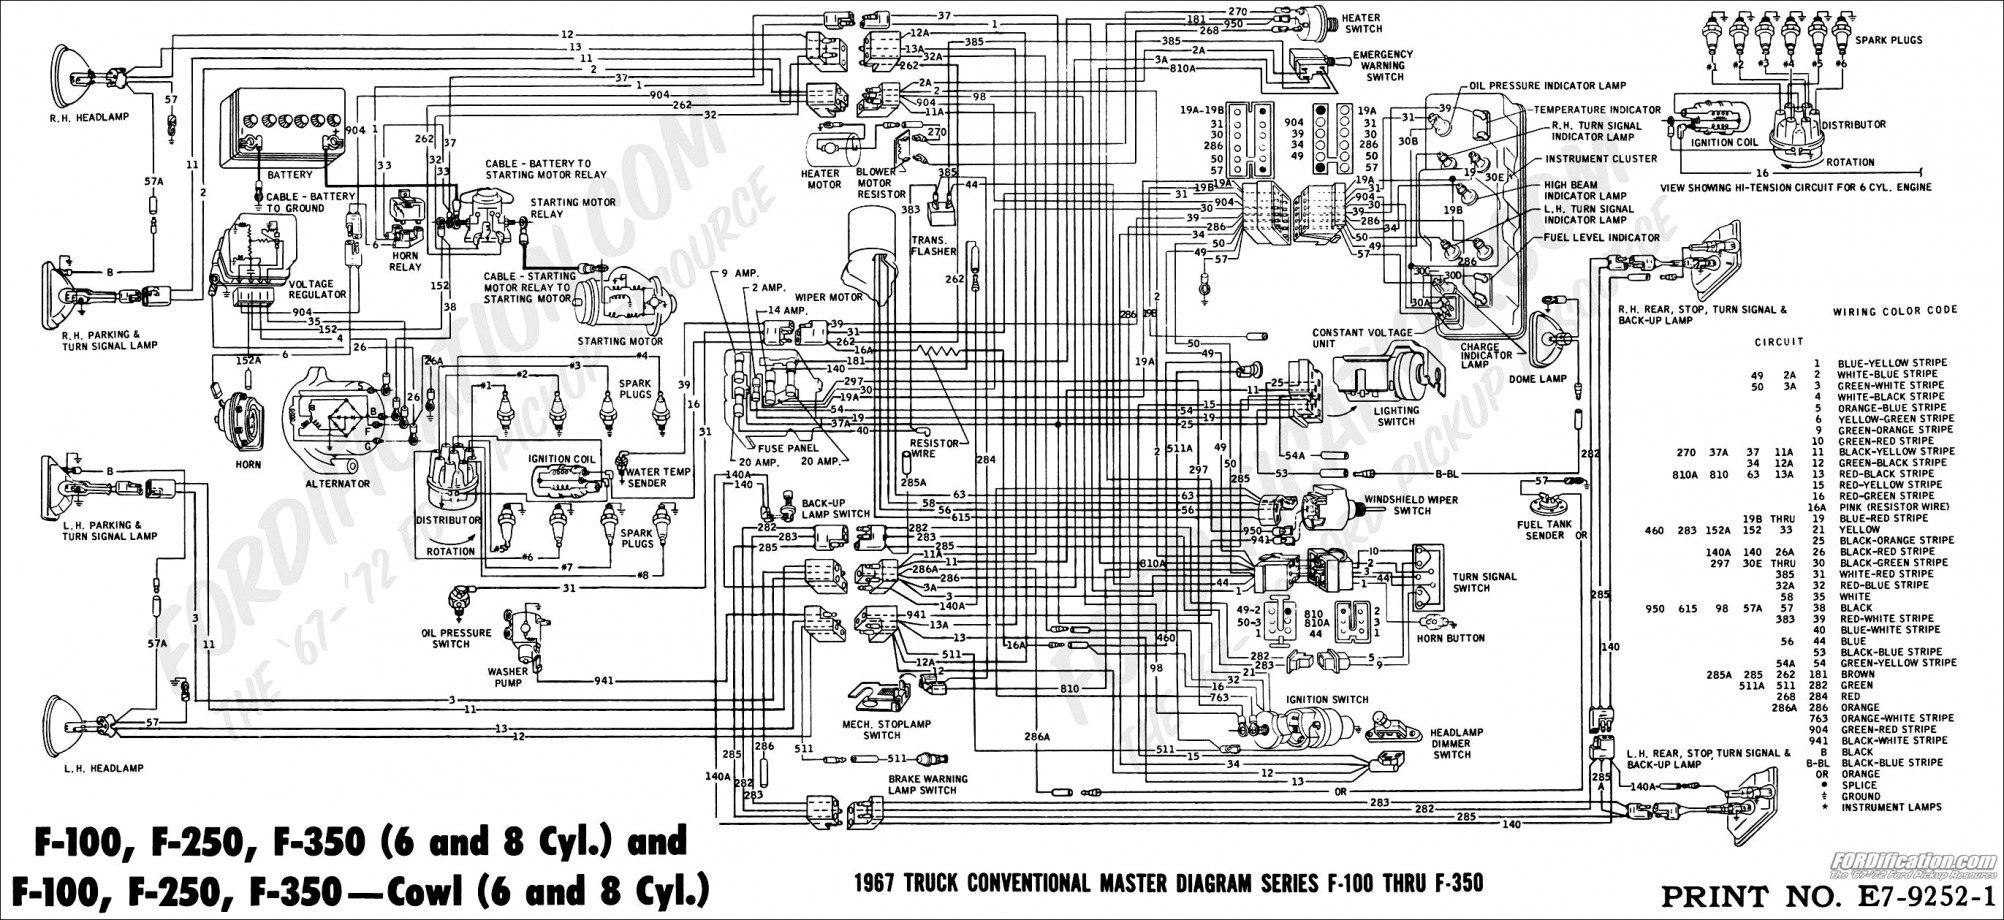 2013 F 150 7 Pin Trailer Wiring Diagram | Trailer Wiring ...